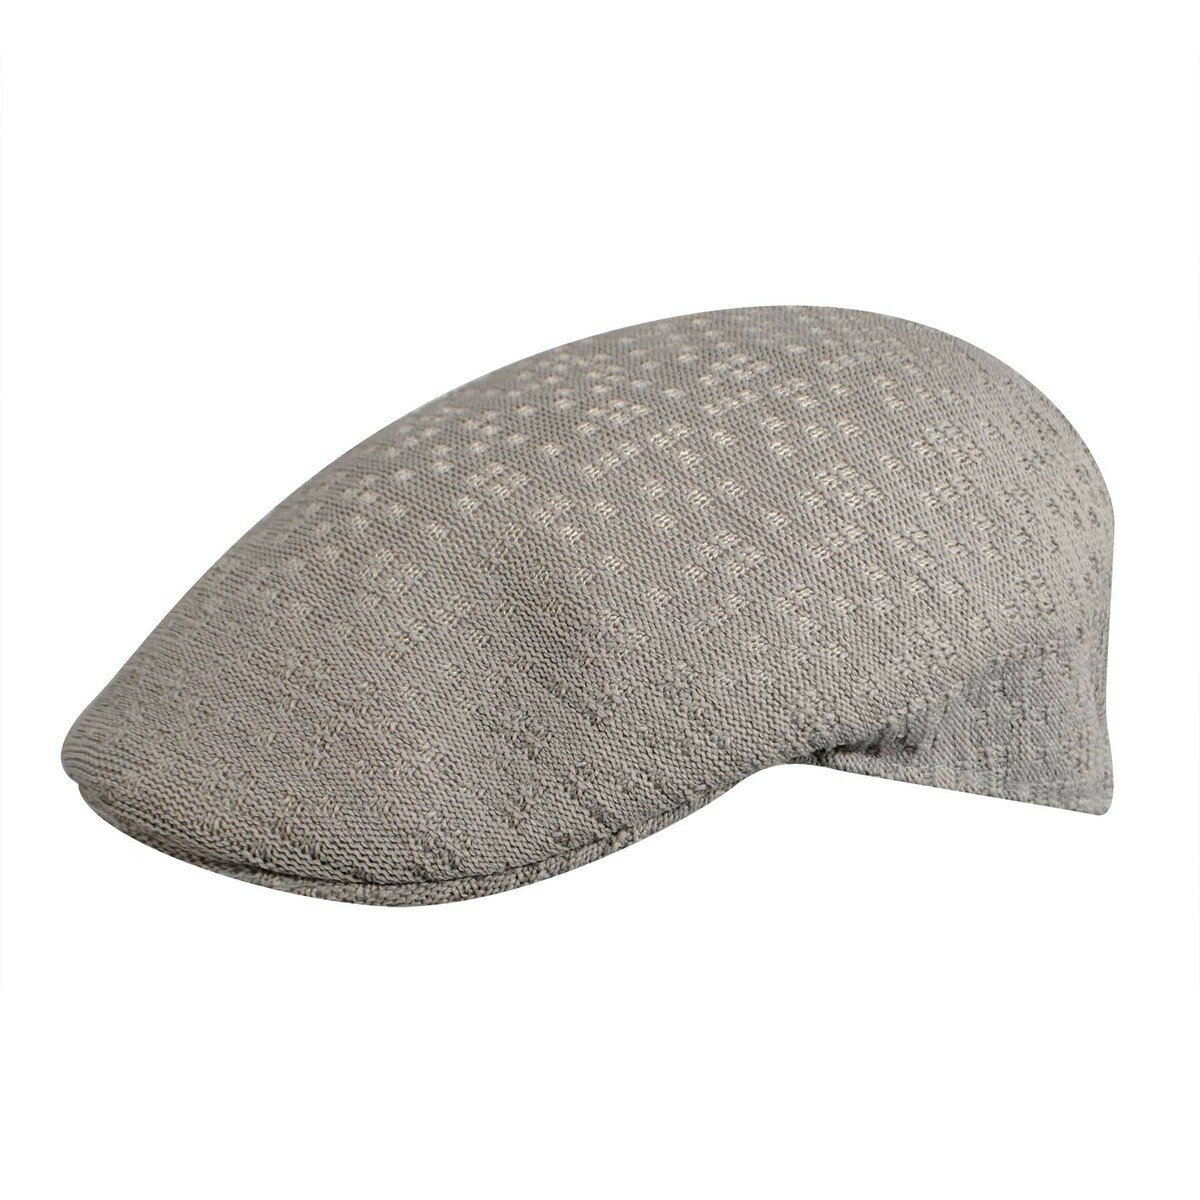 Kangol カンゴール Braille Tex 504 Grey Ivy Caps & Flat Caps 帽子 Grey